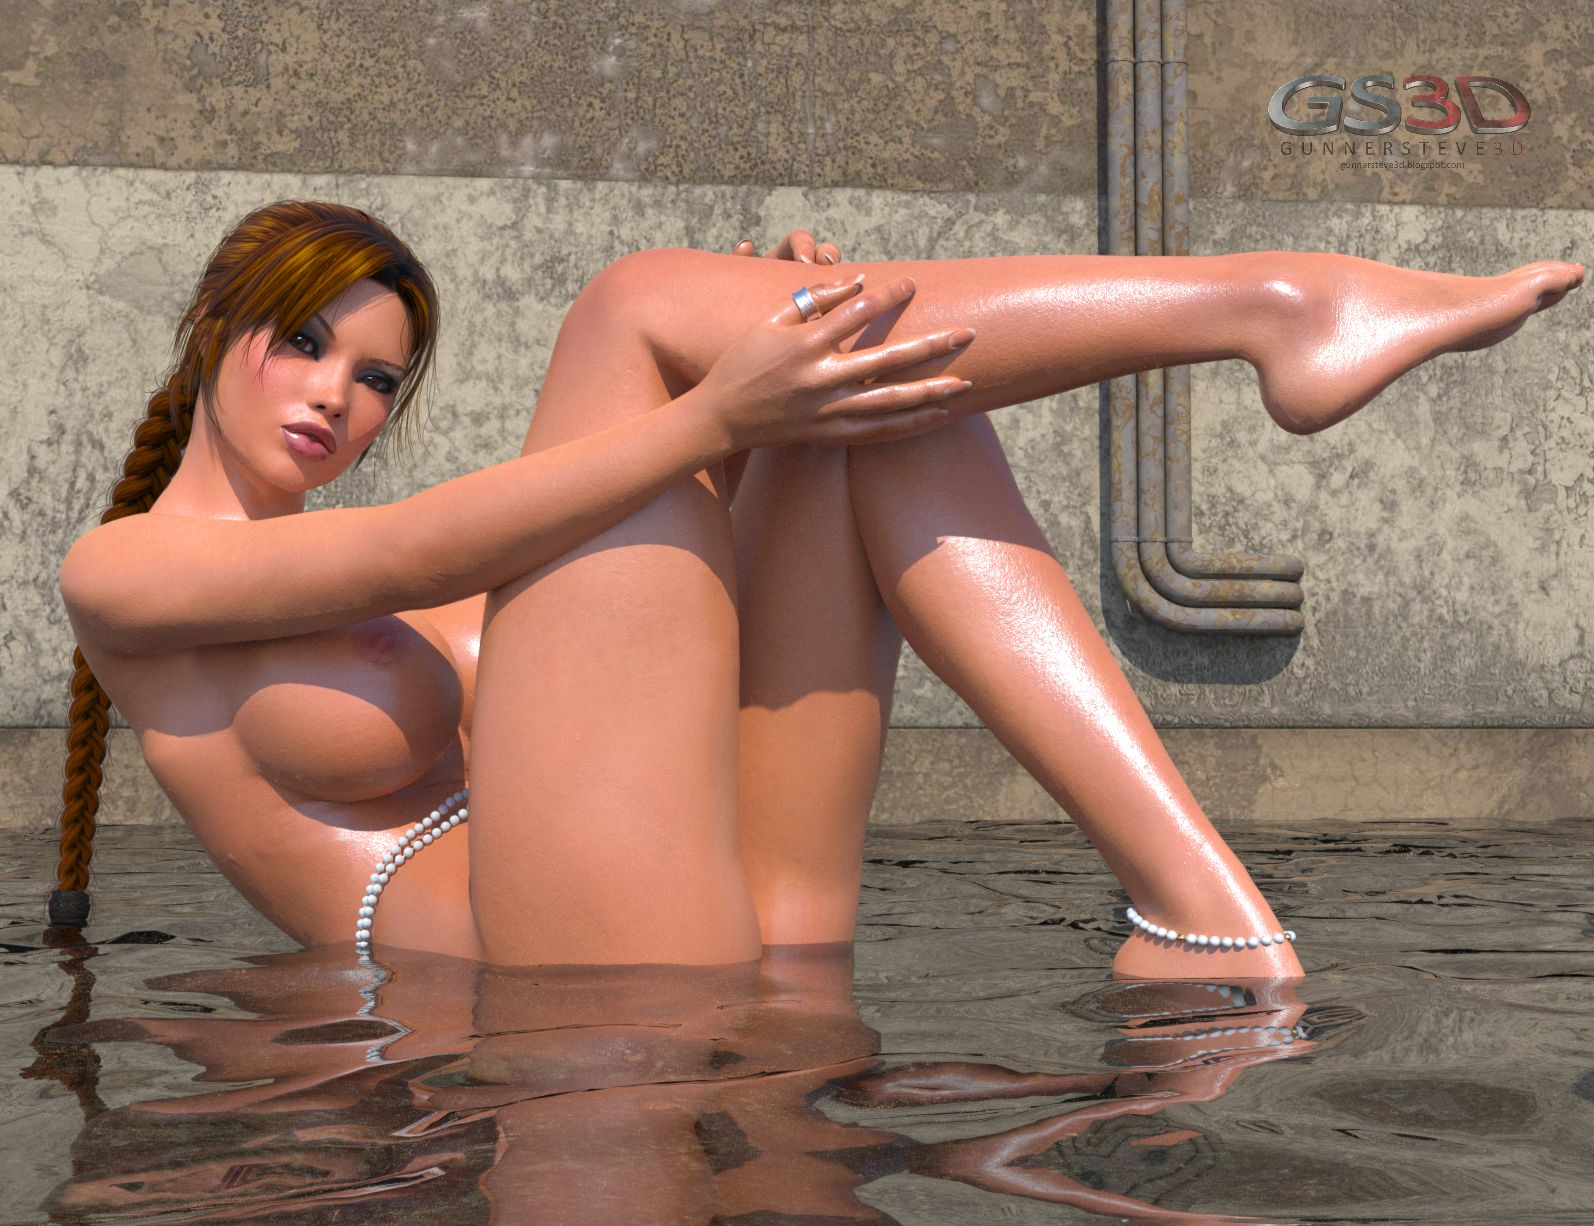 3d lara croft underword nude photos fucked gallery